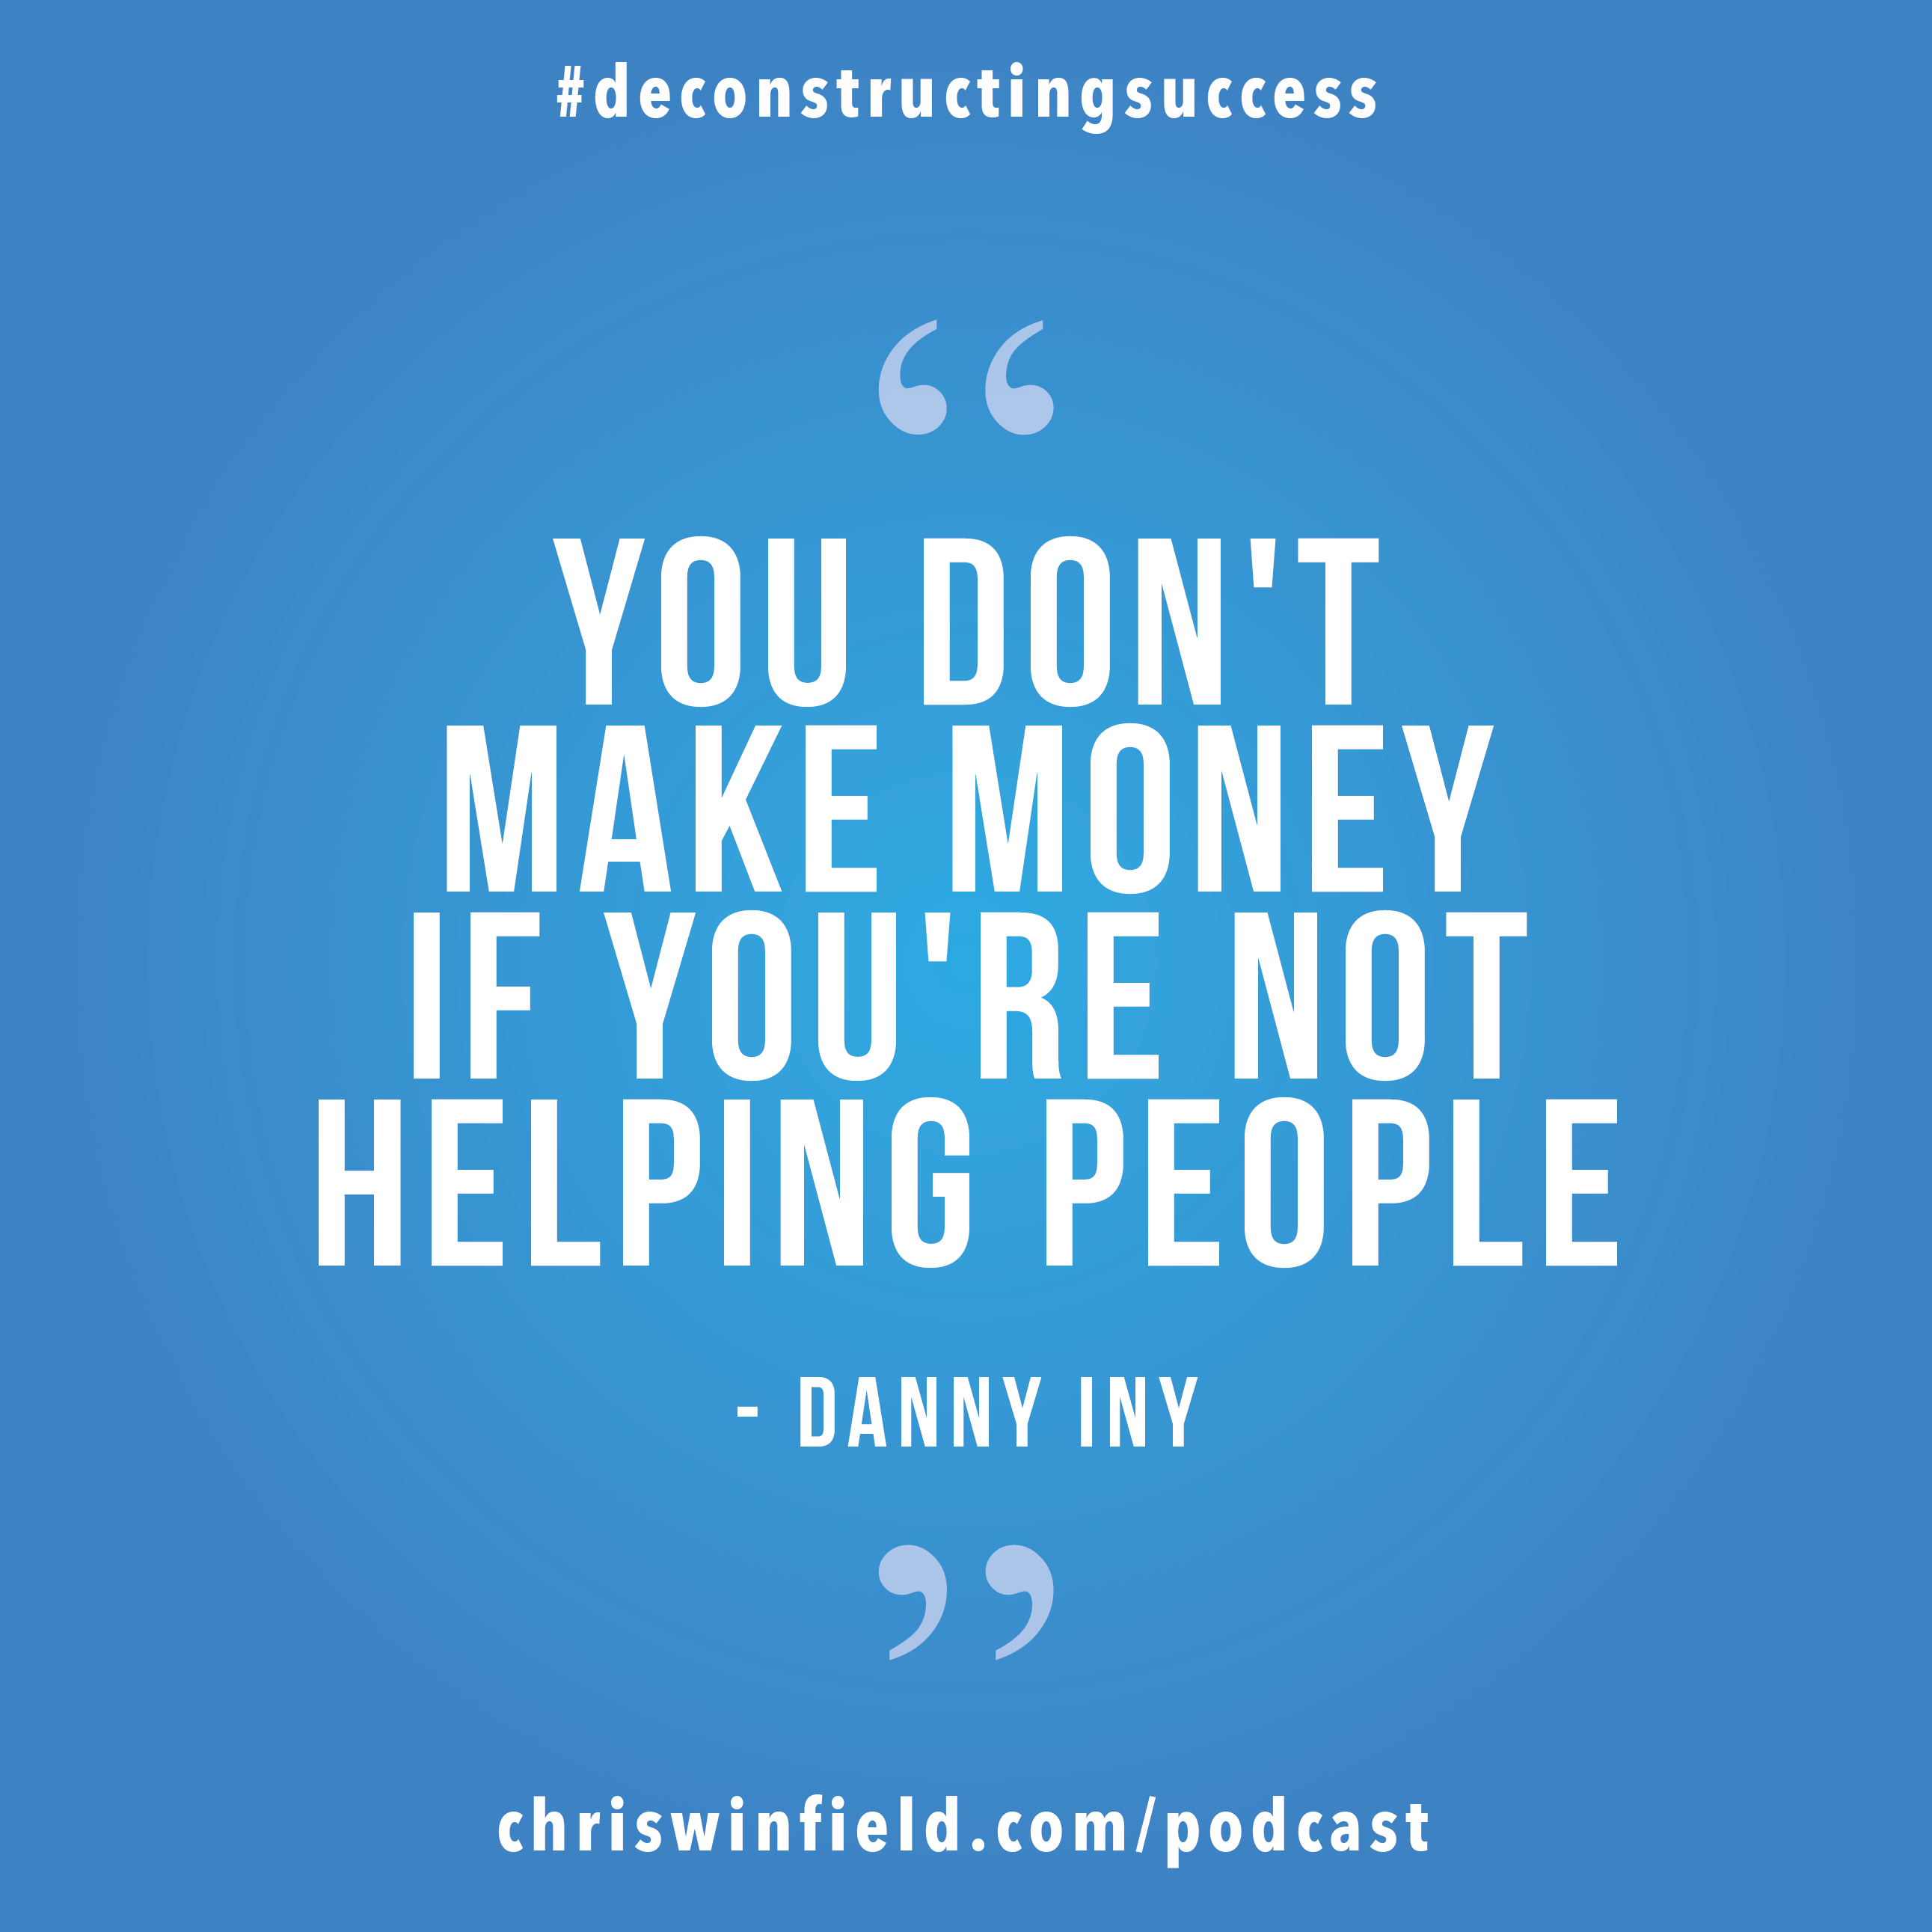 Danny Inny - Chris Winfield Podcast Quote